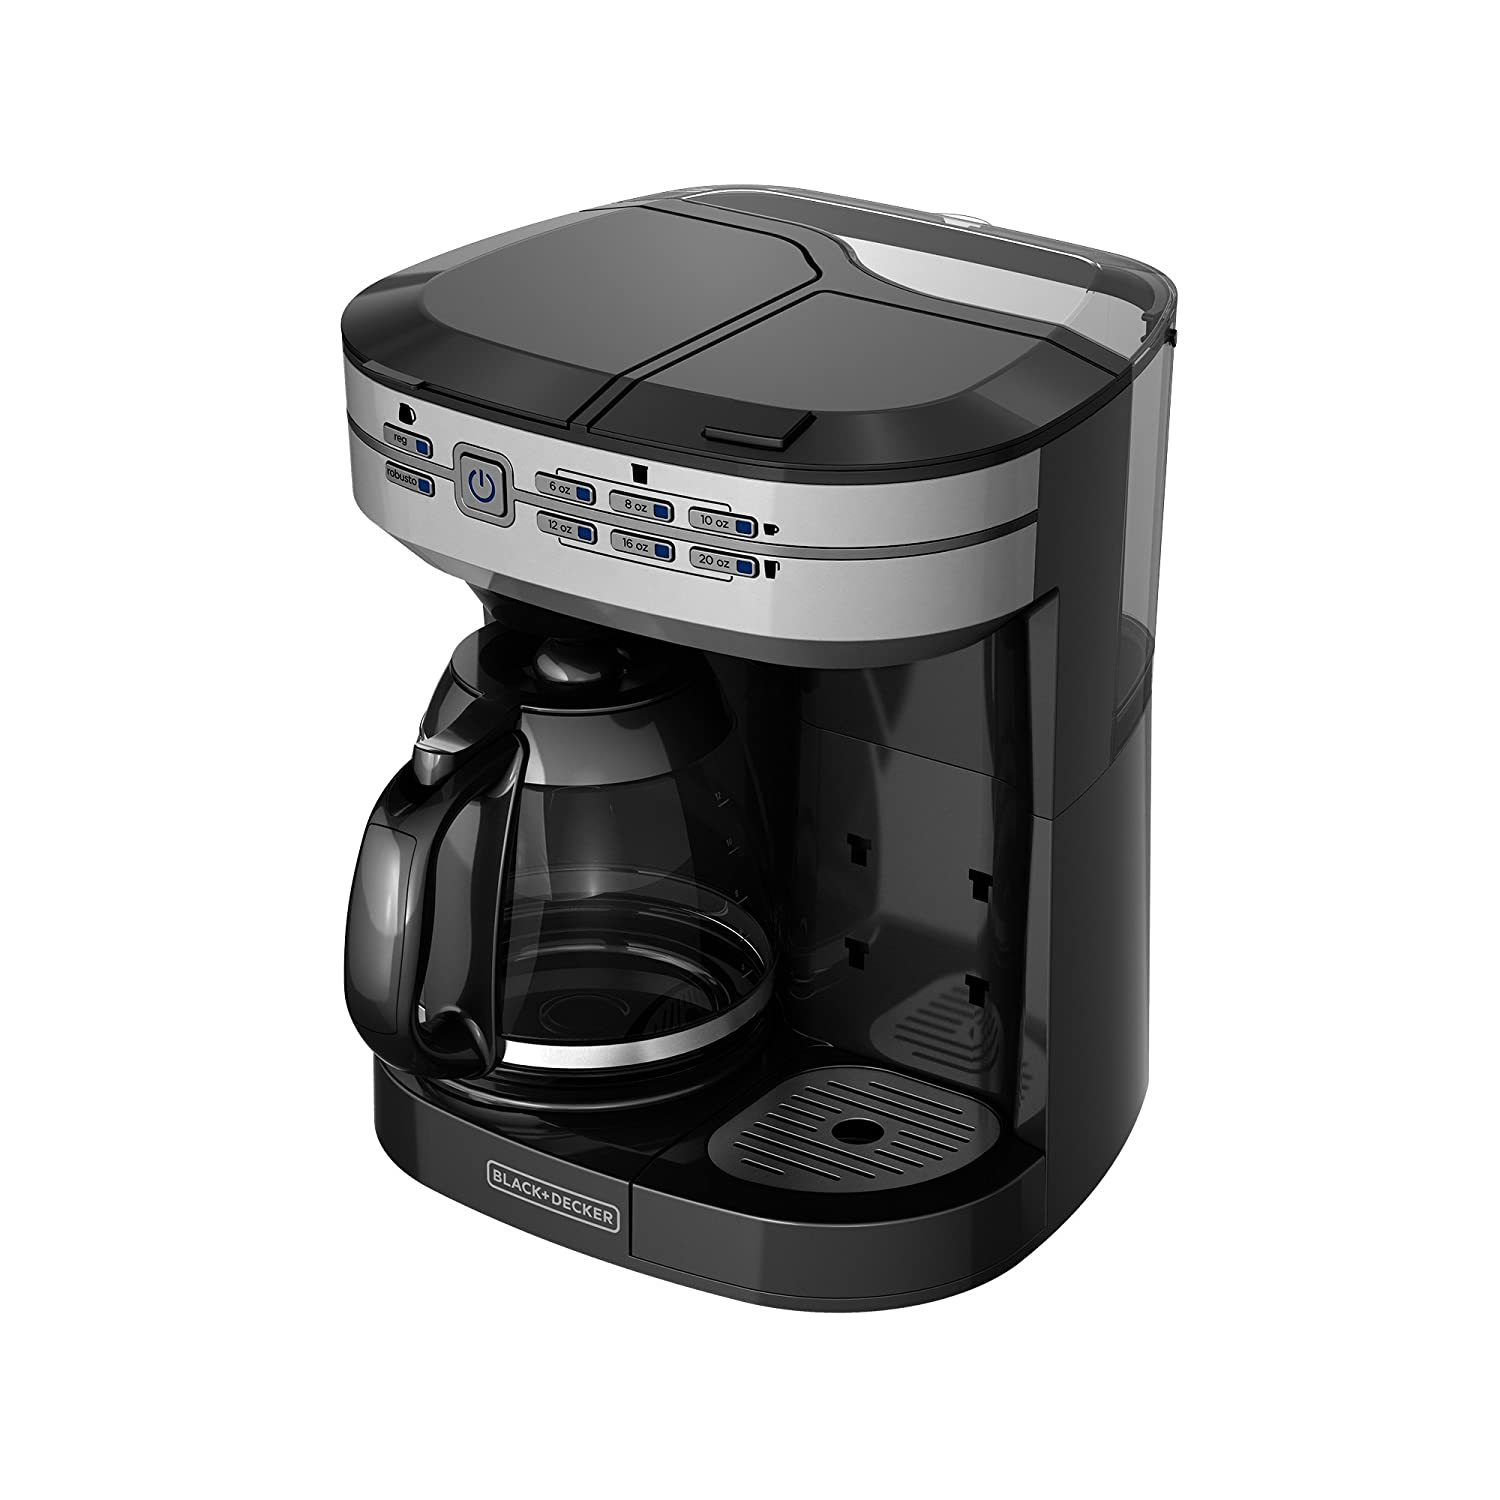 Keurig coffee makers at bed bath and beyond - Amazon Com Black Decker Cm6000bdm Cafe Select 2 In 1 Dual Brew Mug Silver Kitchen Dining